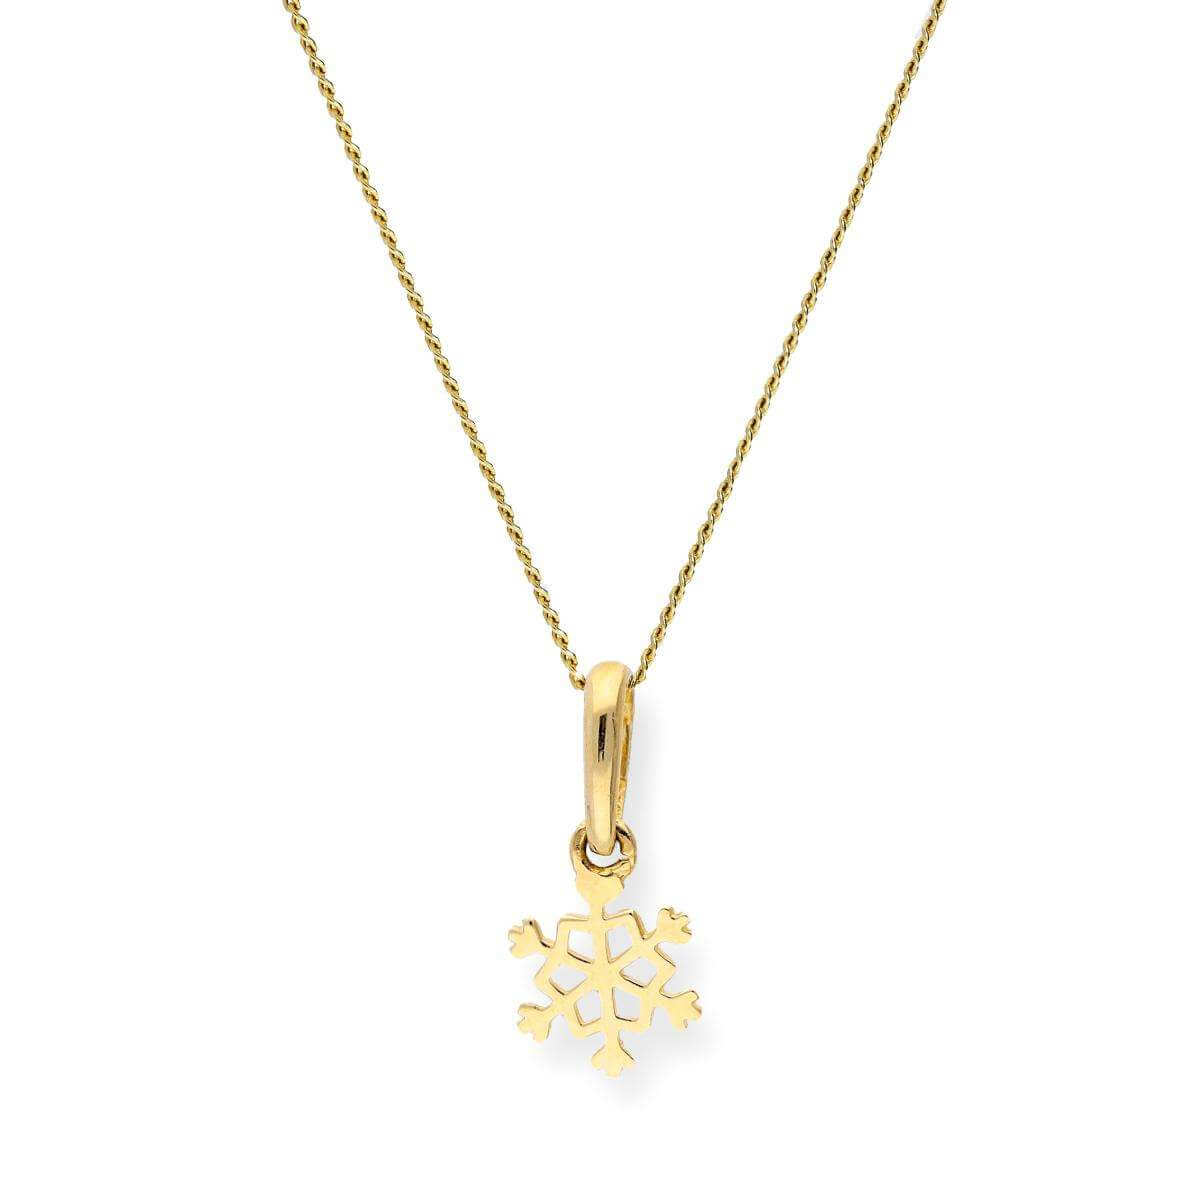 9ct Gold Snowflake Pendant Necklace